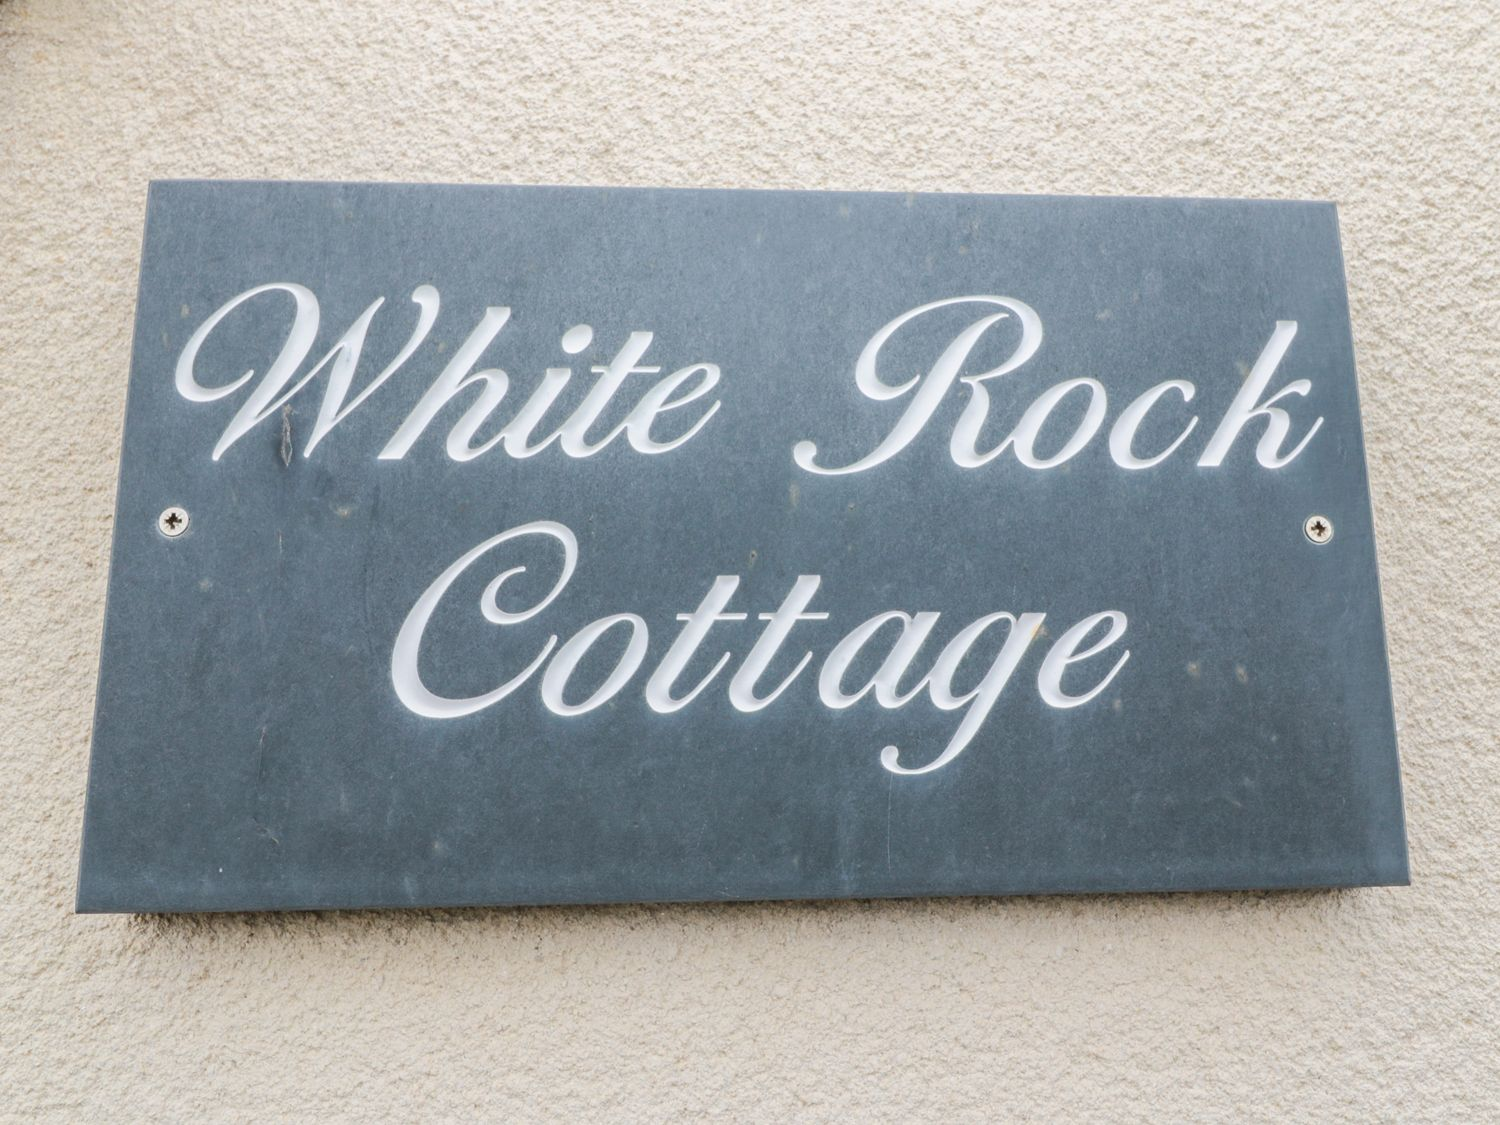 White Rock Cottage, North East England